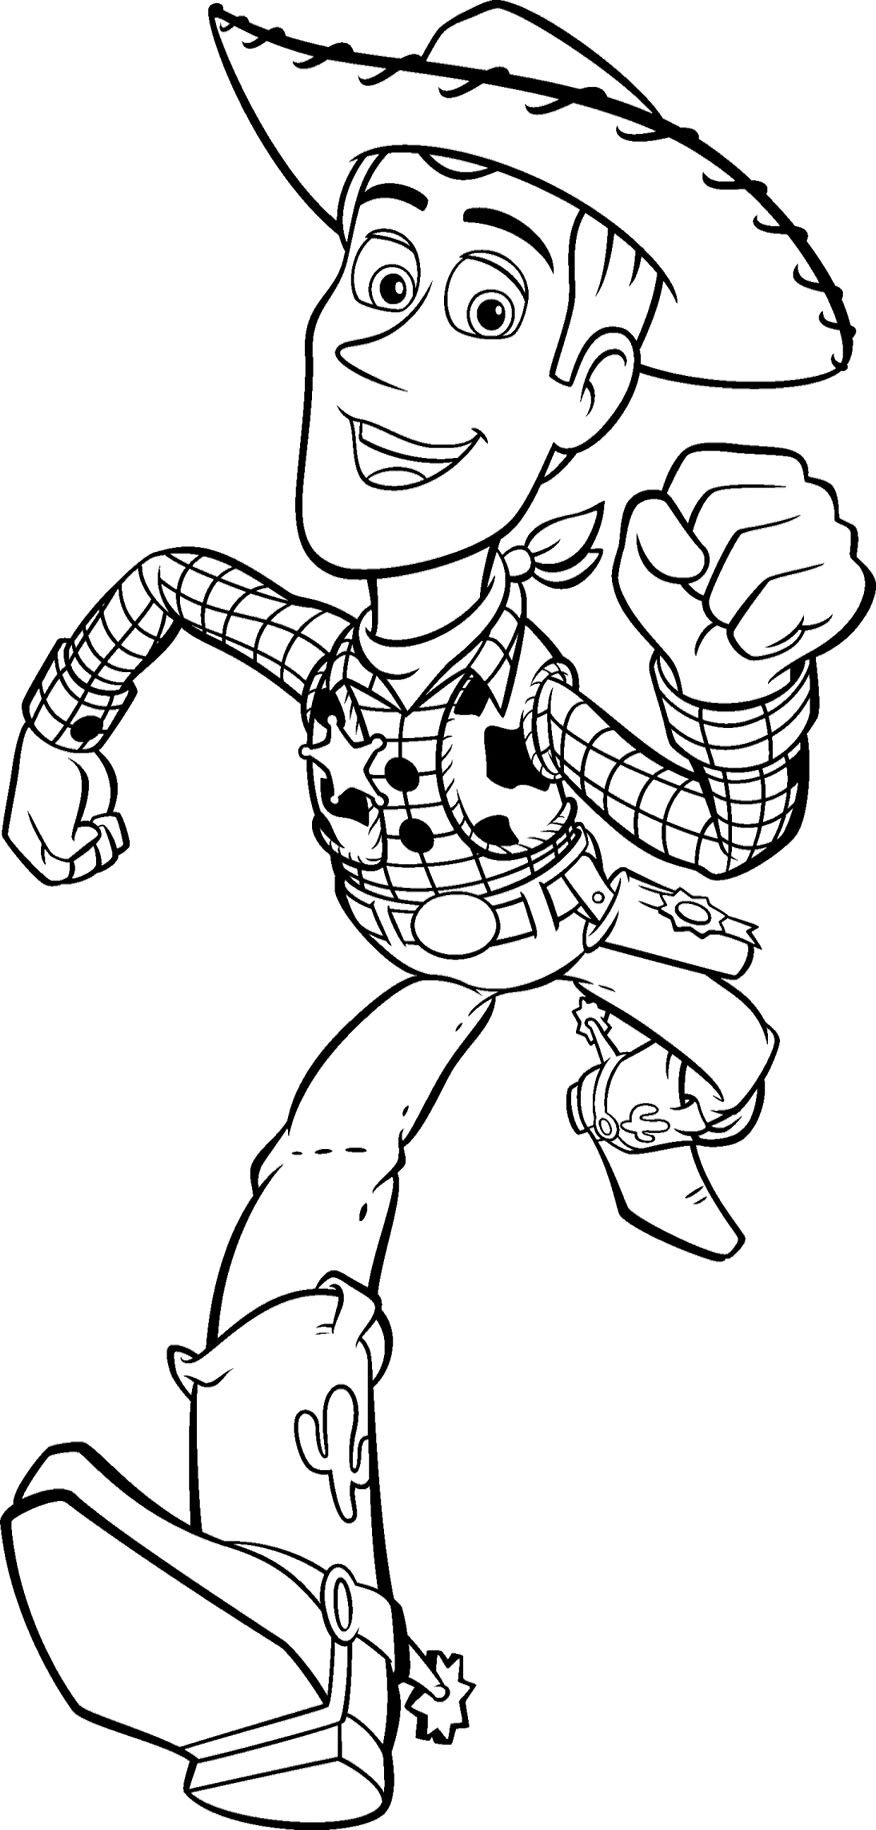 Free coloring pages toy story